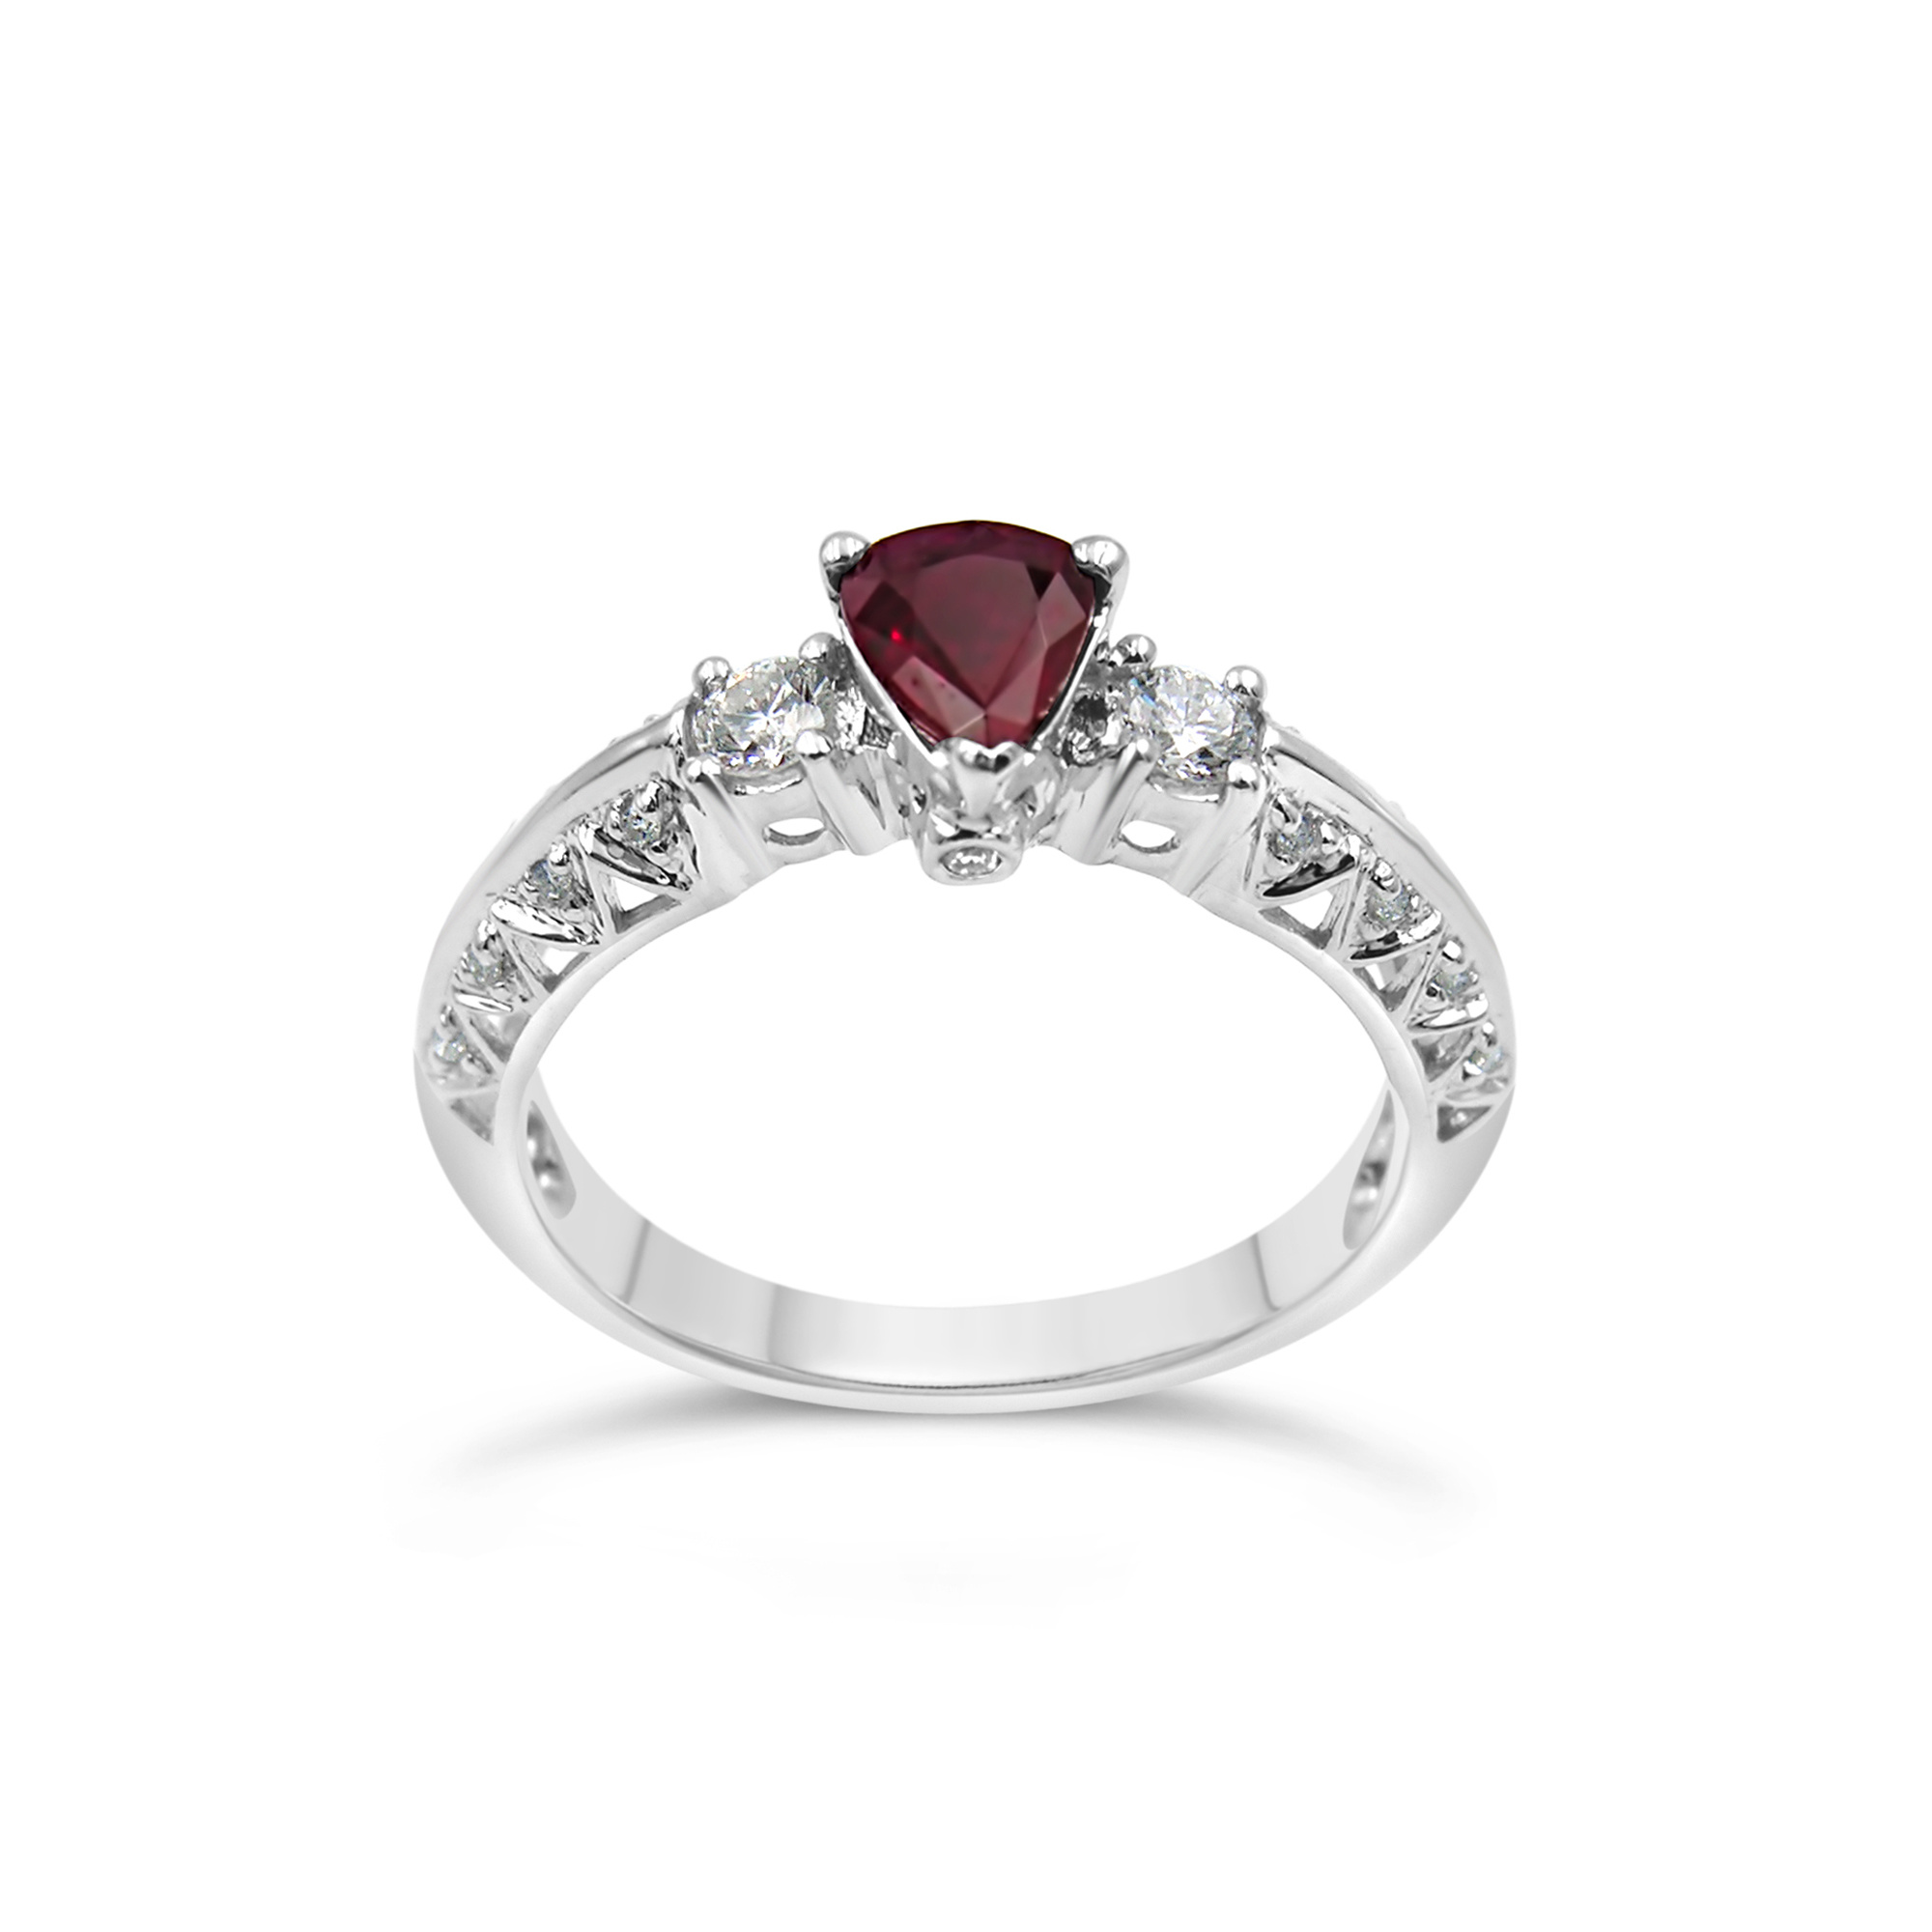 18k wit goud ring met 0.26 ct diamanten & 0.51 ct robijn